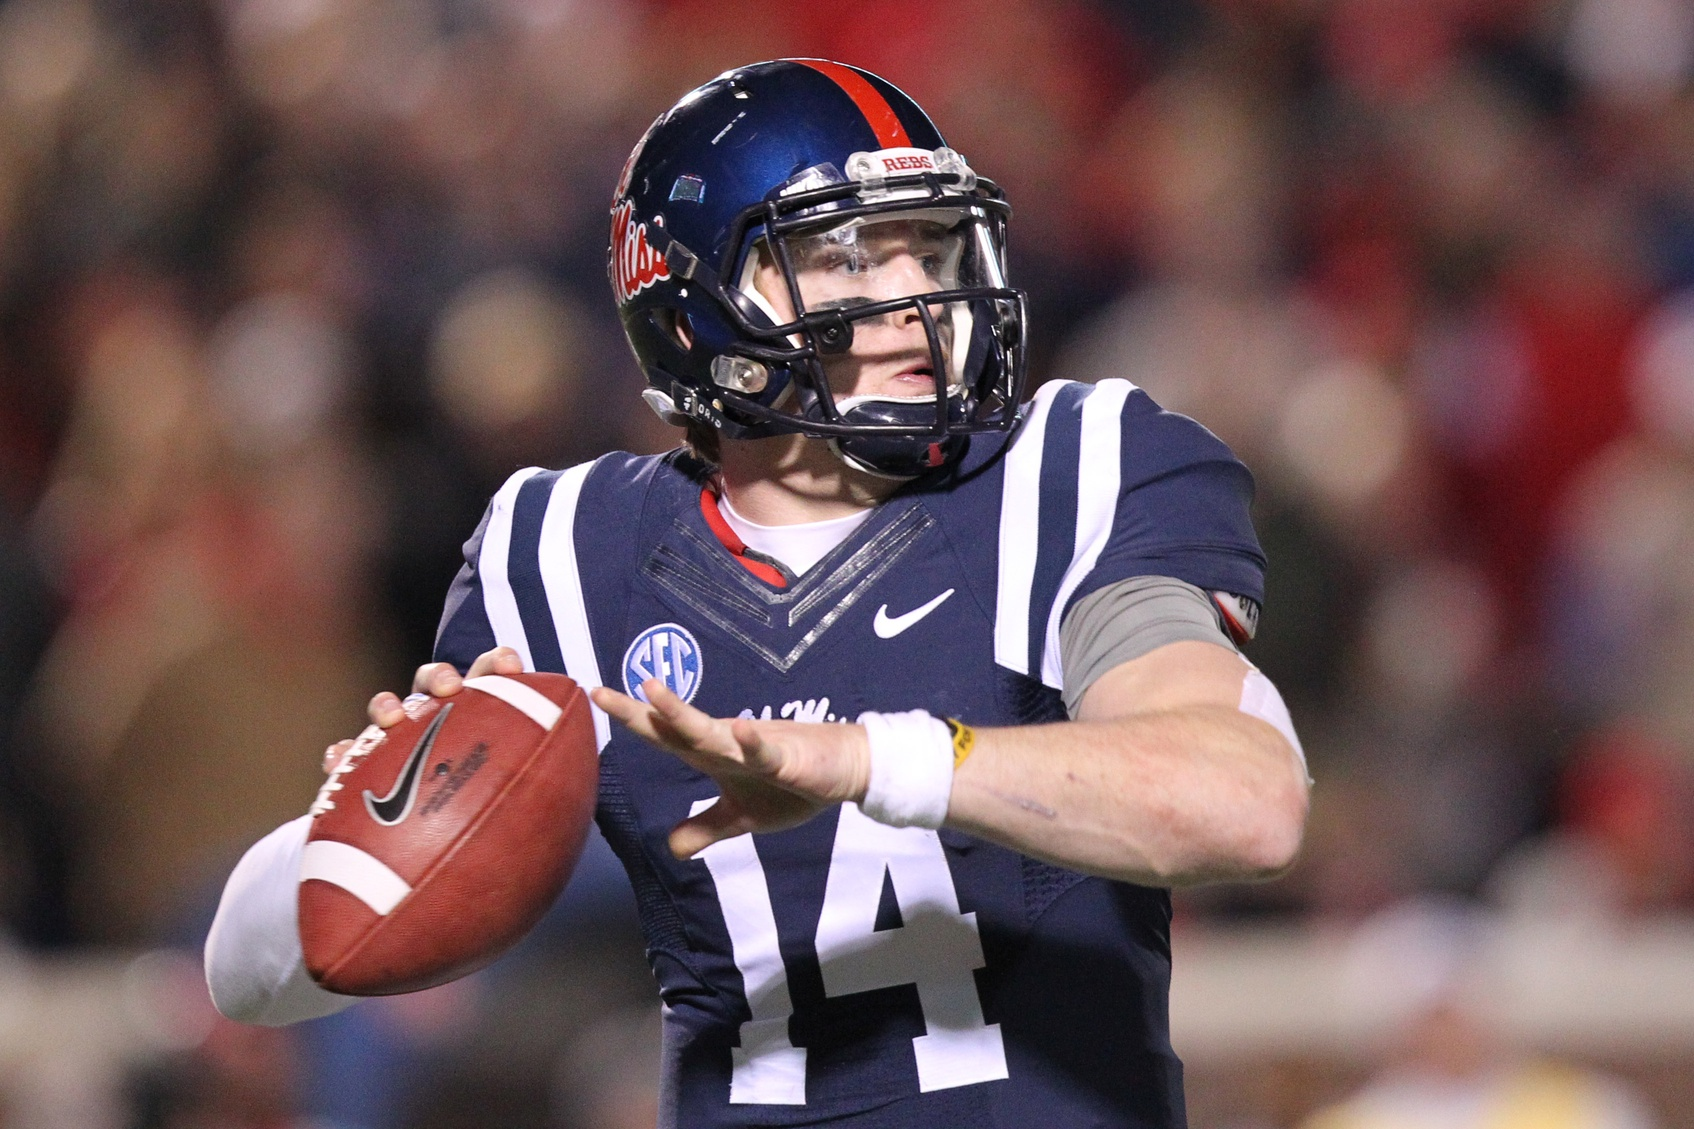 Early Opponent Analysis: Ole Miss